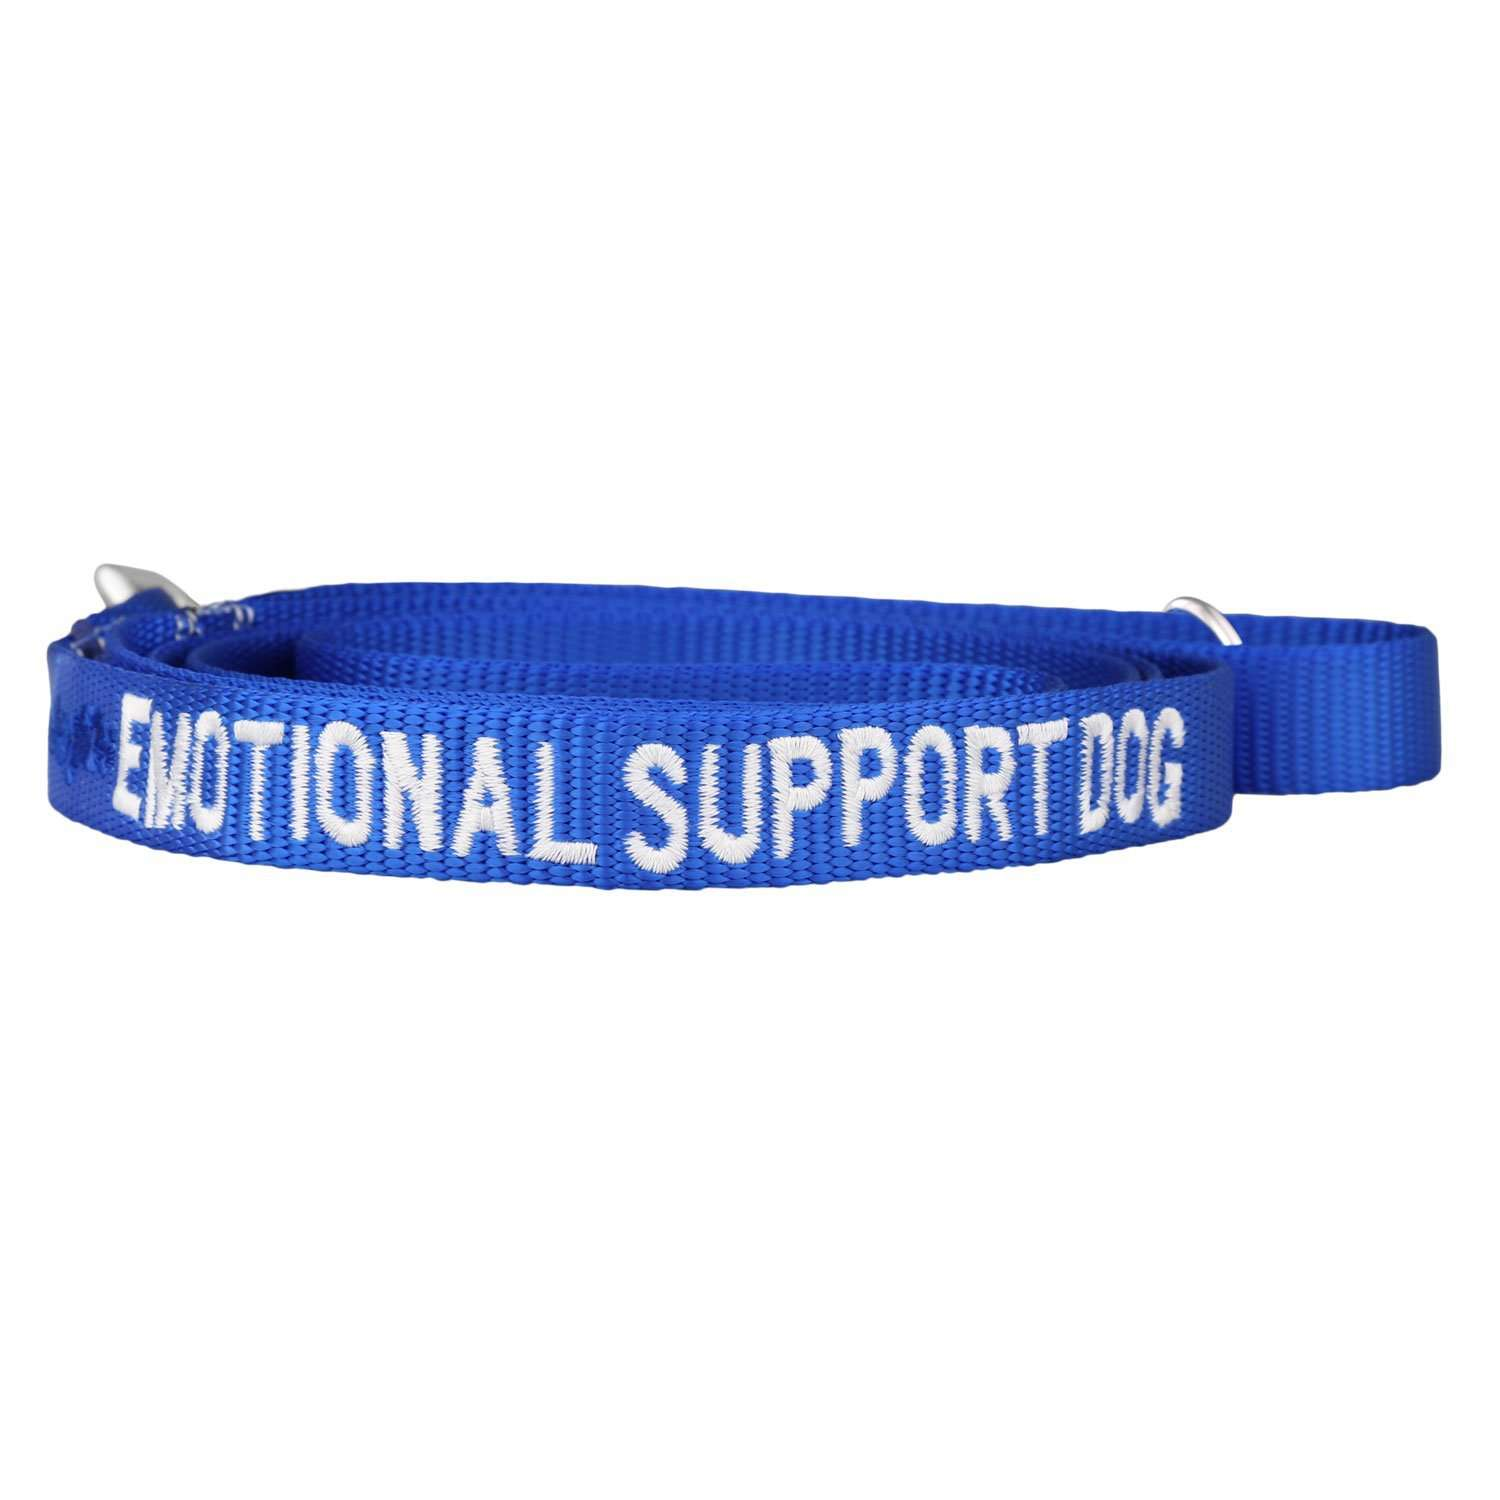 dogIDs Embroidered Emotional Support Dog Nylon Leash, 4 FT - SitStay